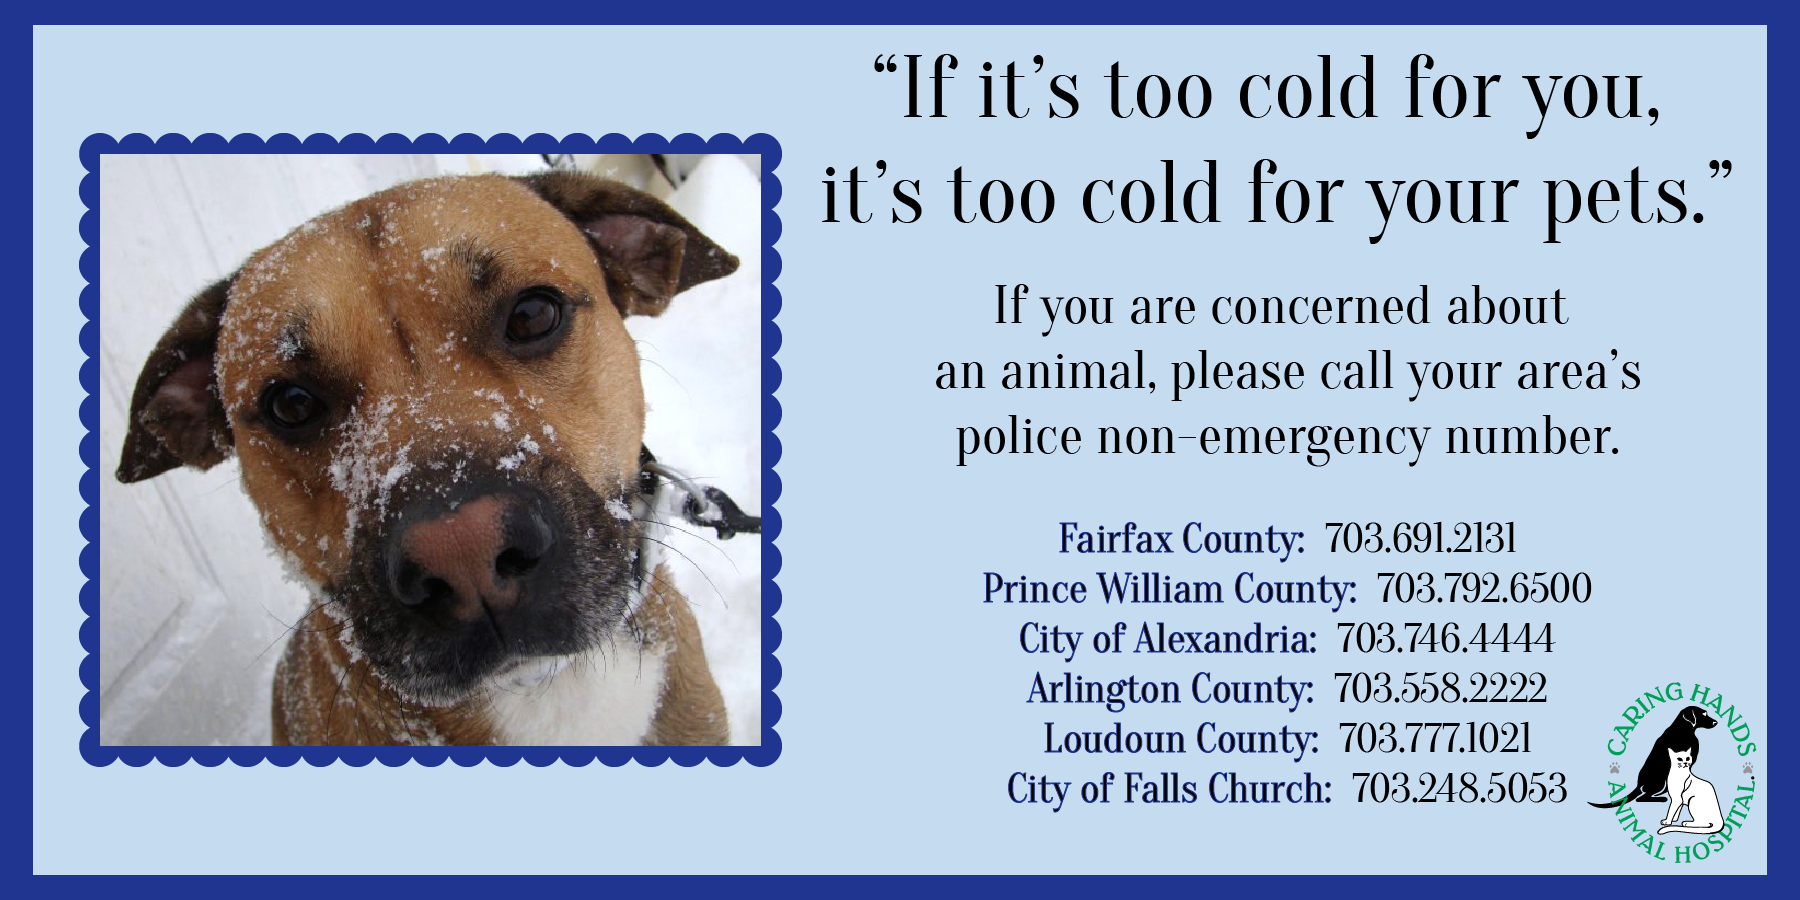 pw county press release protect your pet during cold